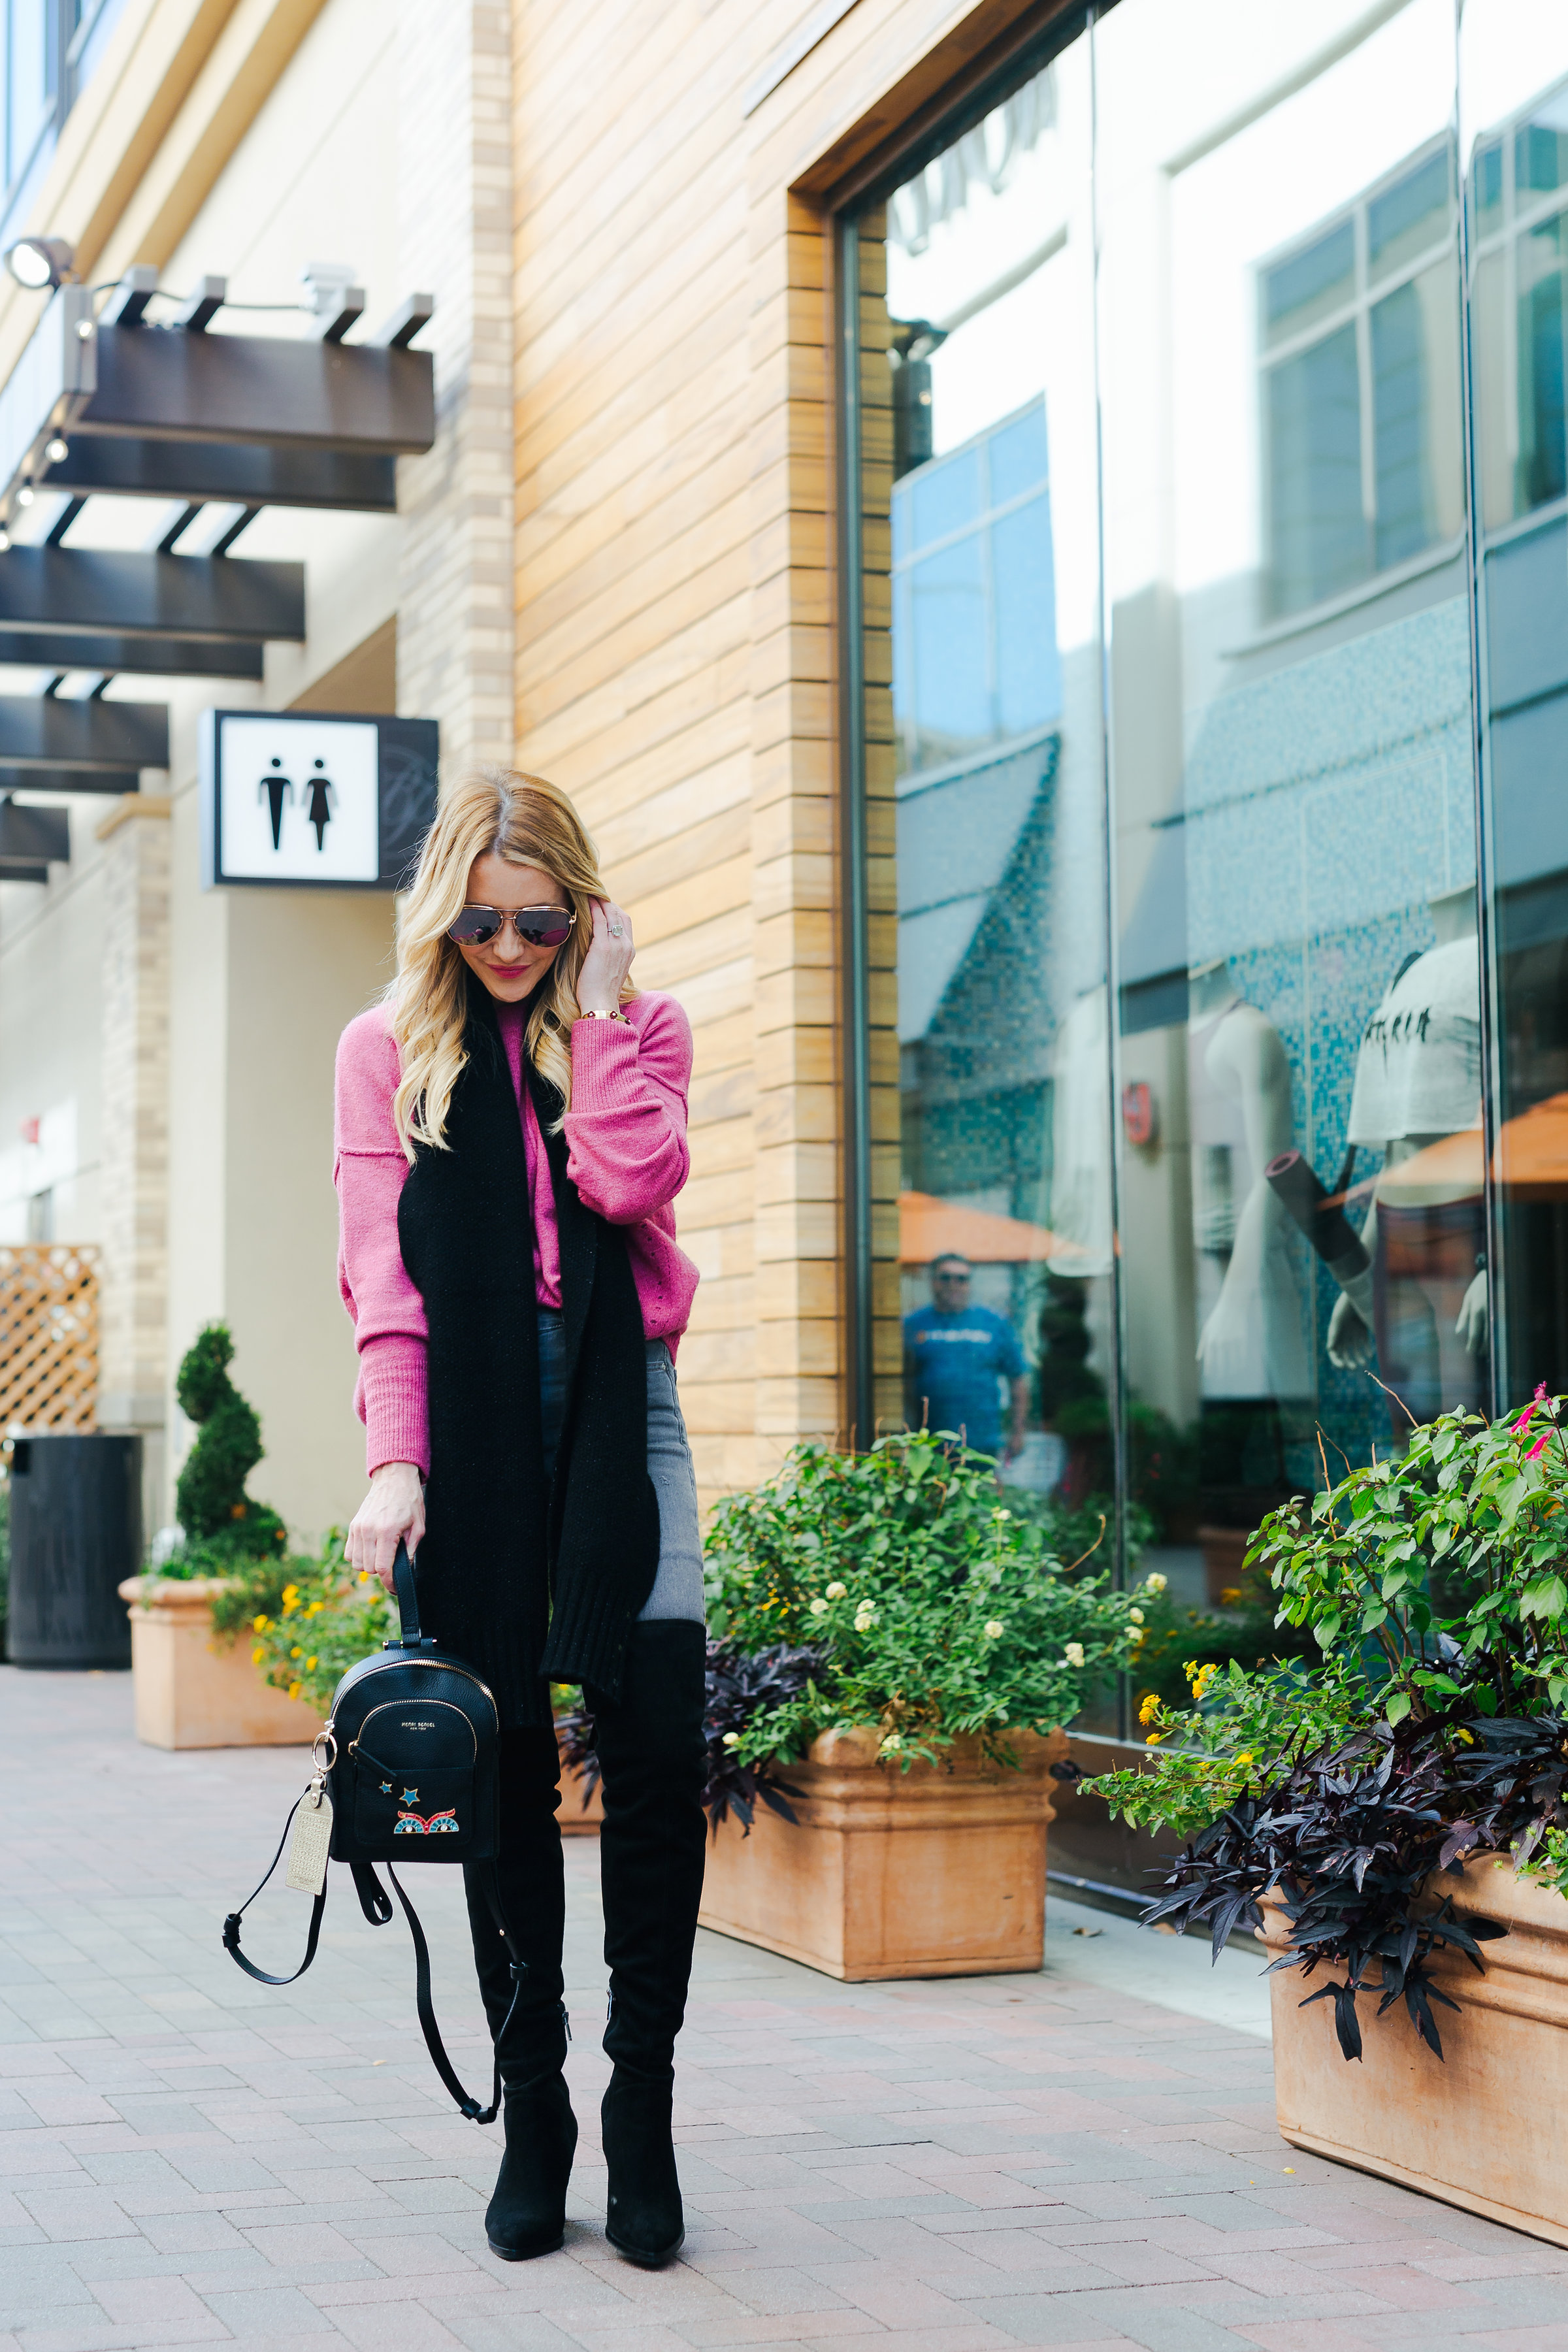 5 Reasons I Obsess over My Henri Bendel Purse by San Francisco fashion blogger For the Love